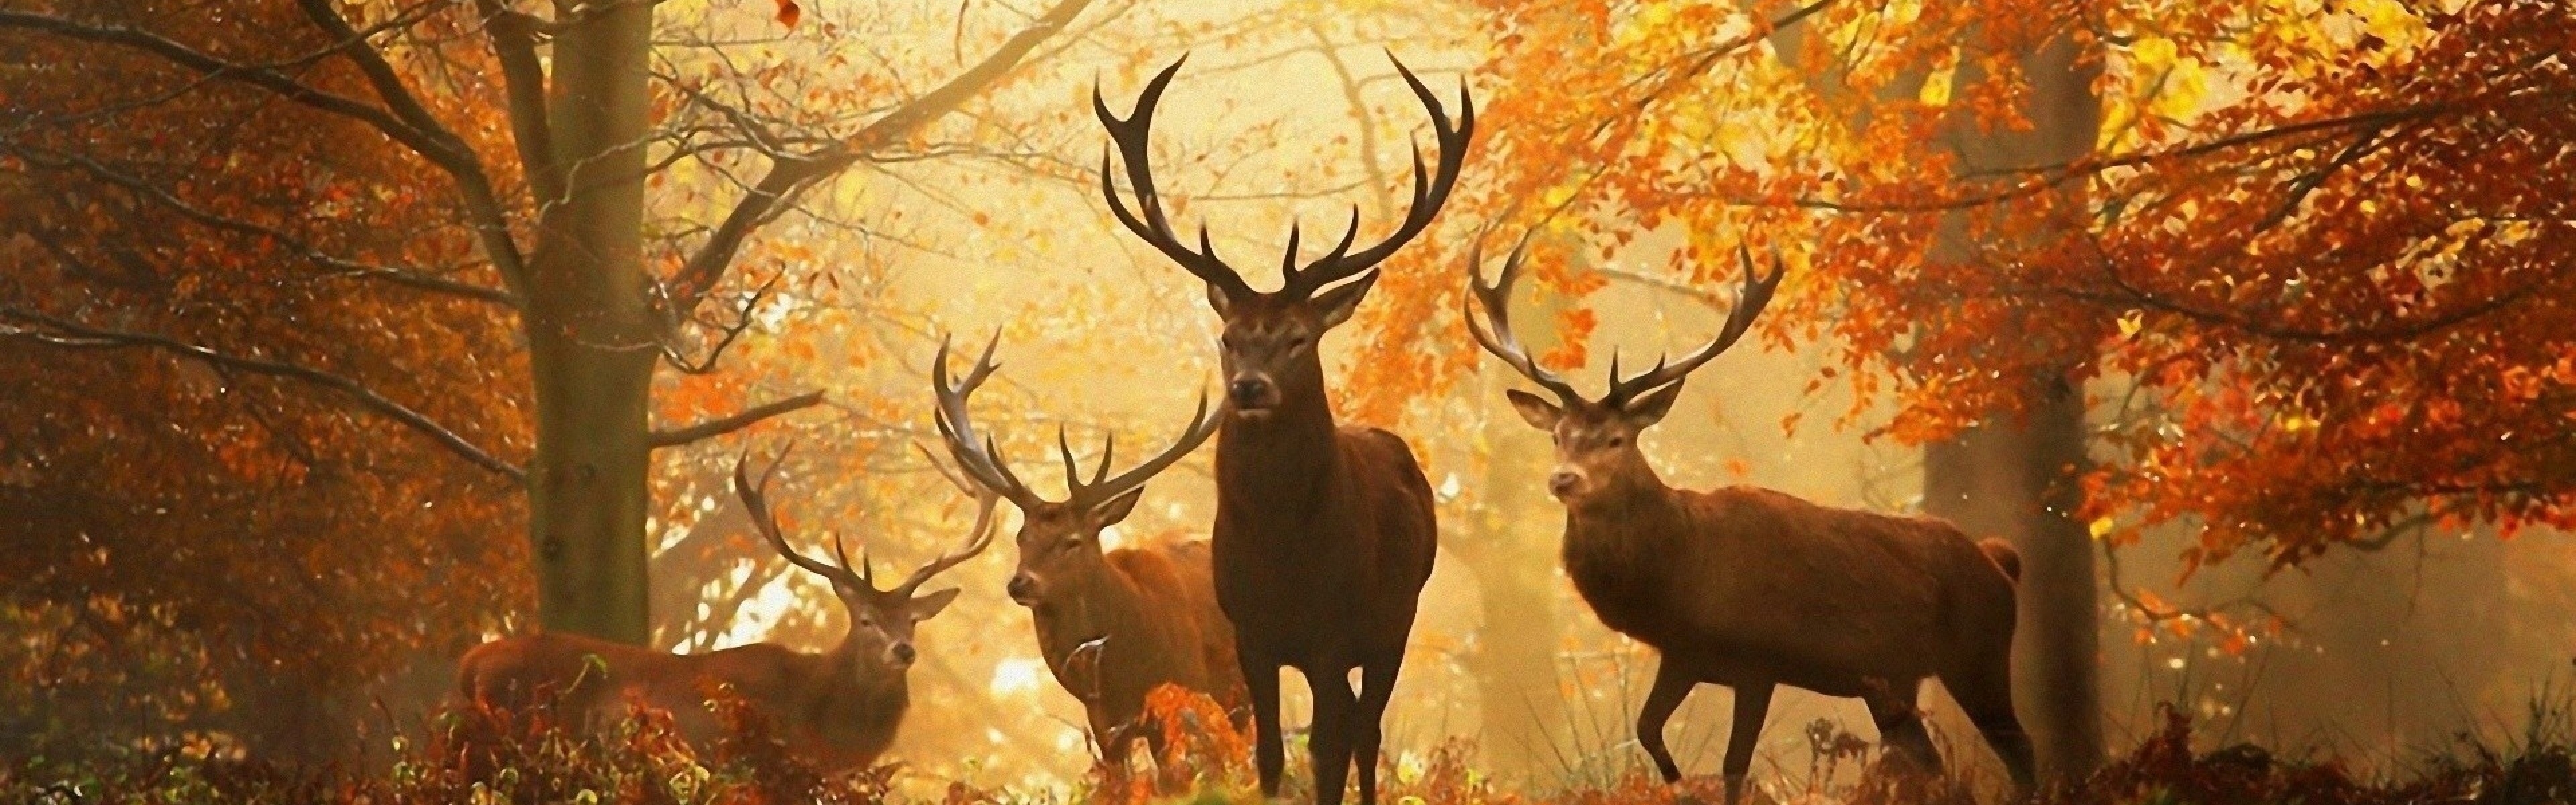 deer wallpaper for facebook full hd pictures